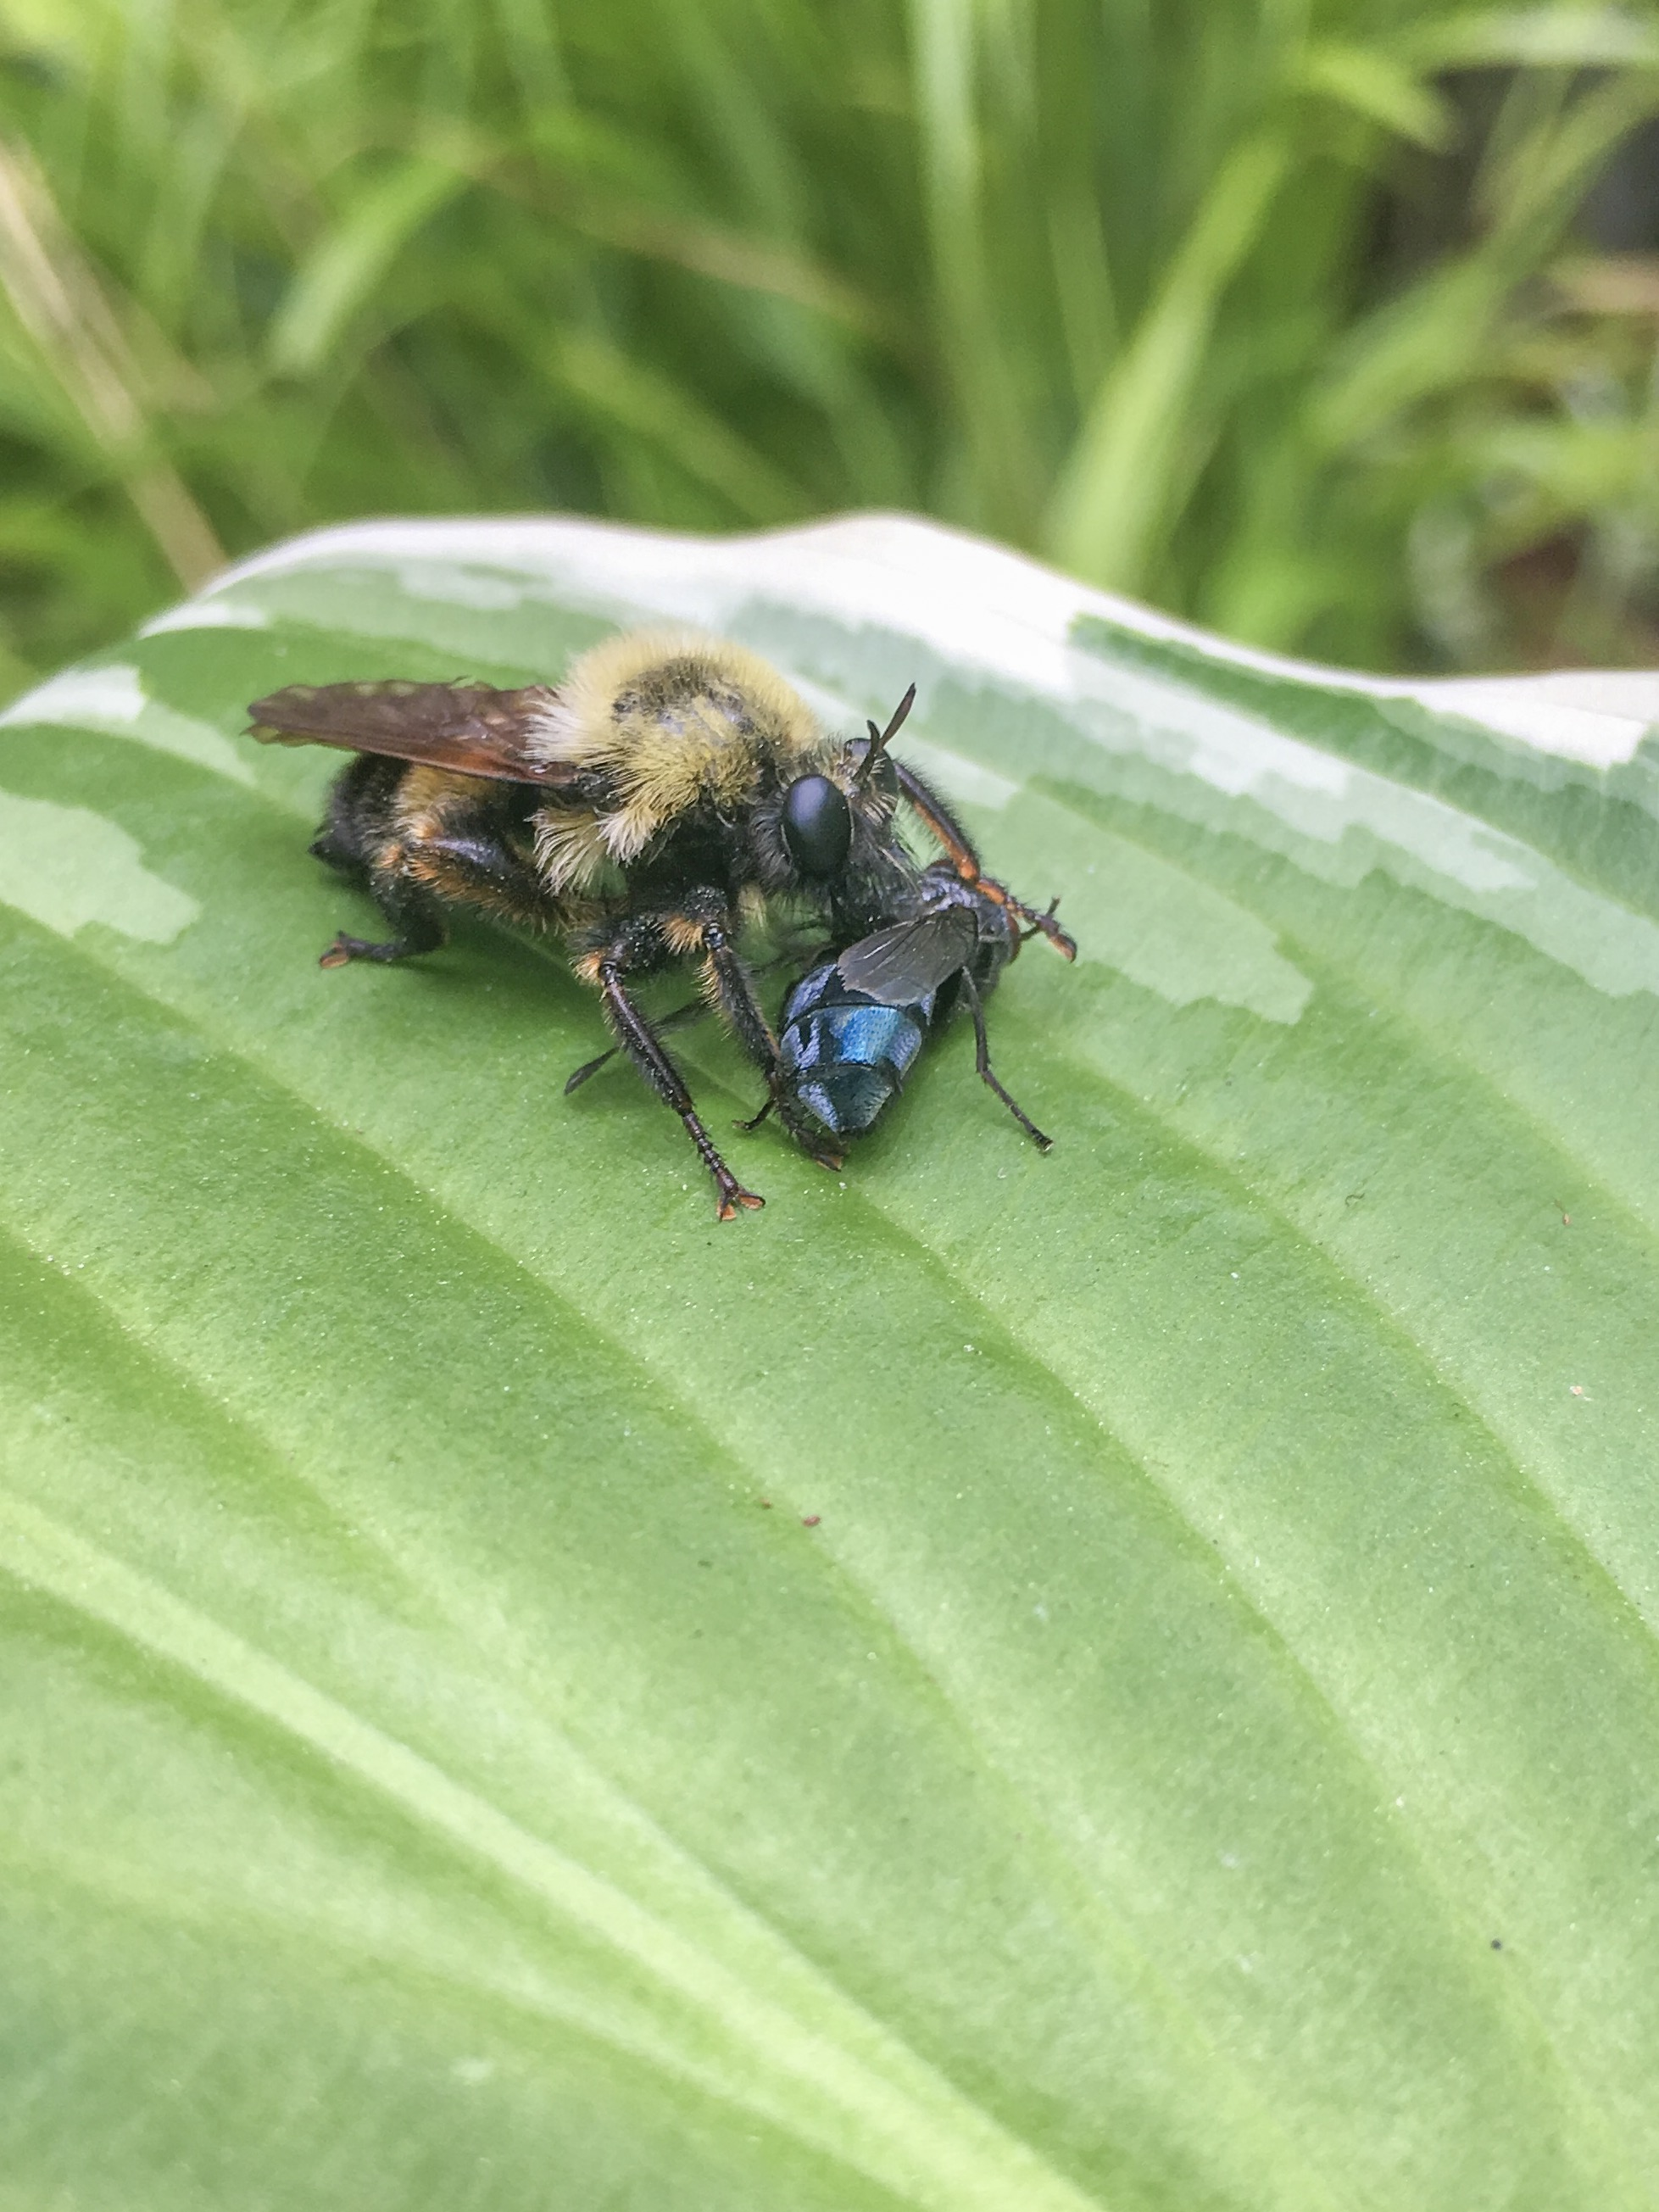 A Robber Fly taking care of business (free pest control)